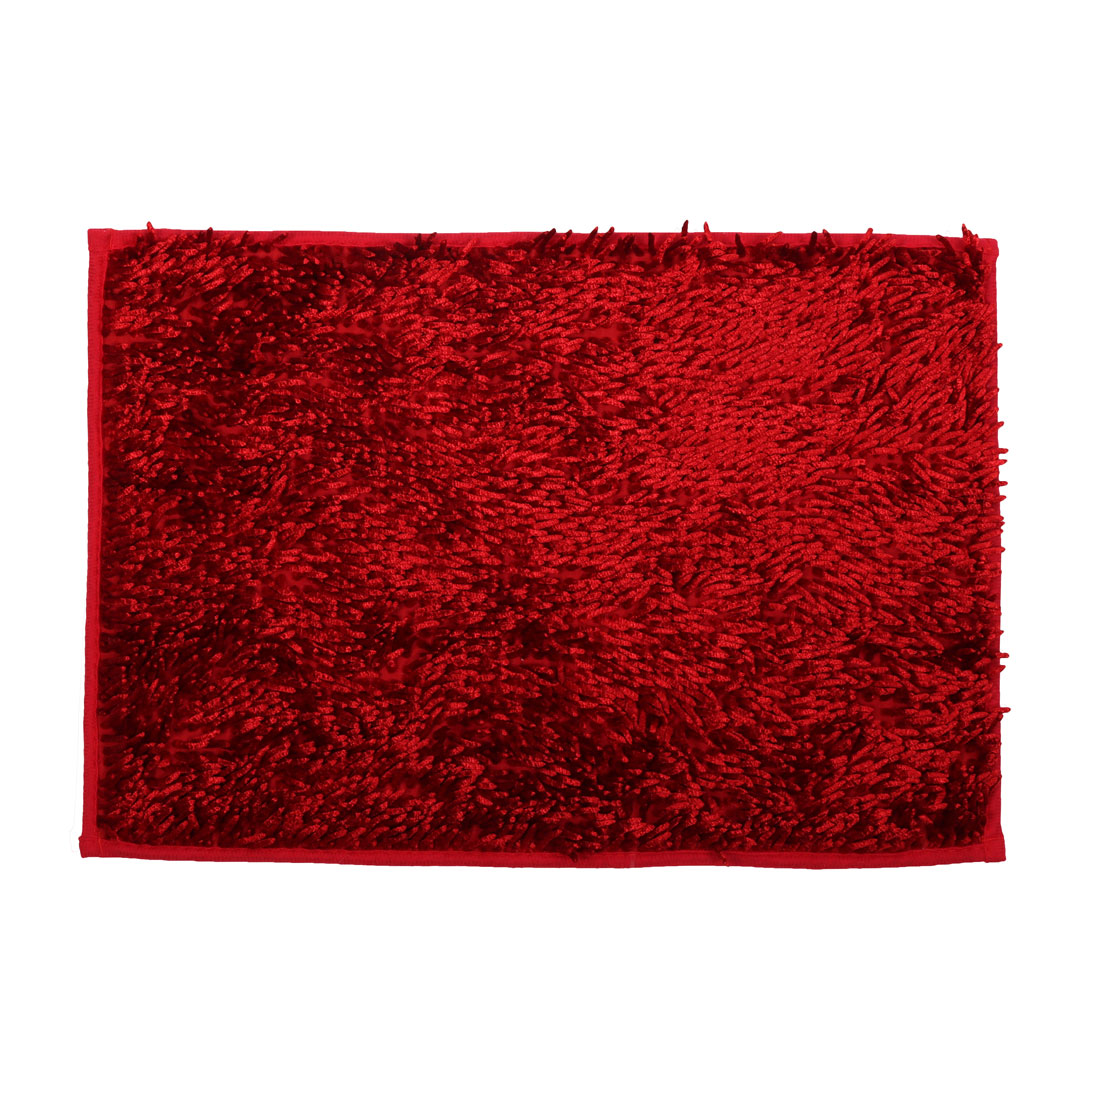 Household Bathroom Slip Resistant Absorbent Carpet Bath Rug Mat Red 24 x 16 Inches